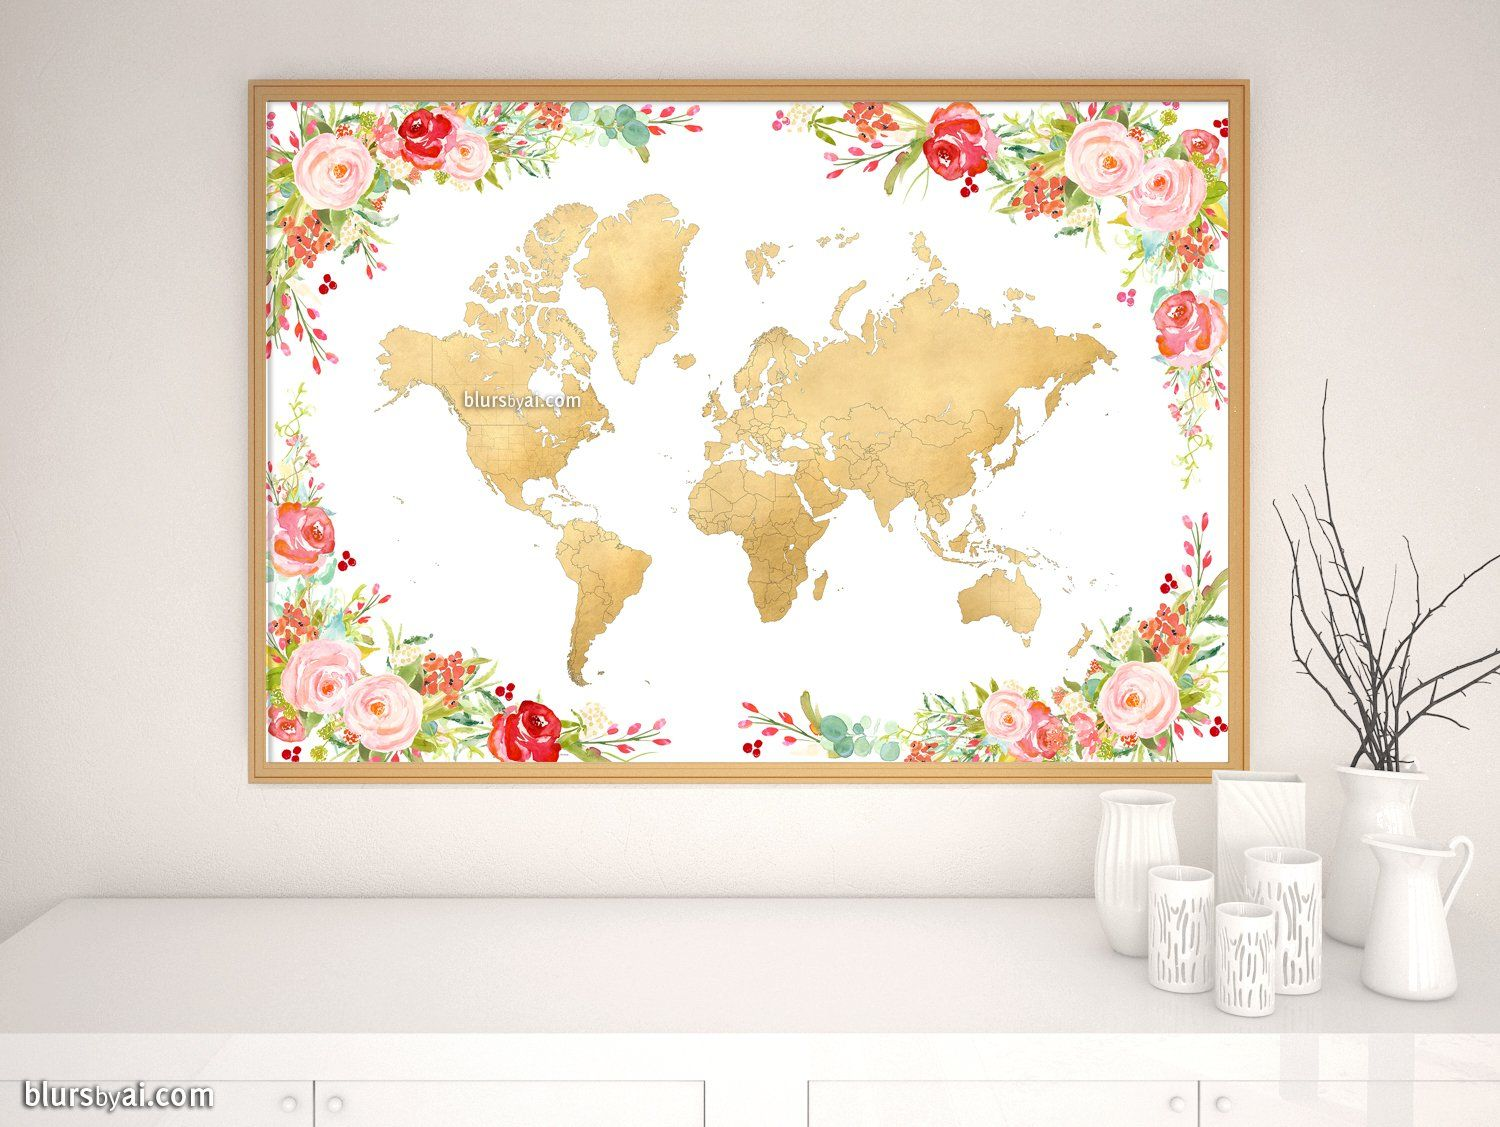 Floral and gold world map print without labels, \